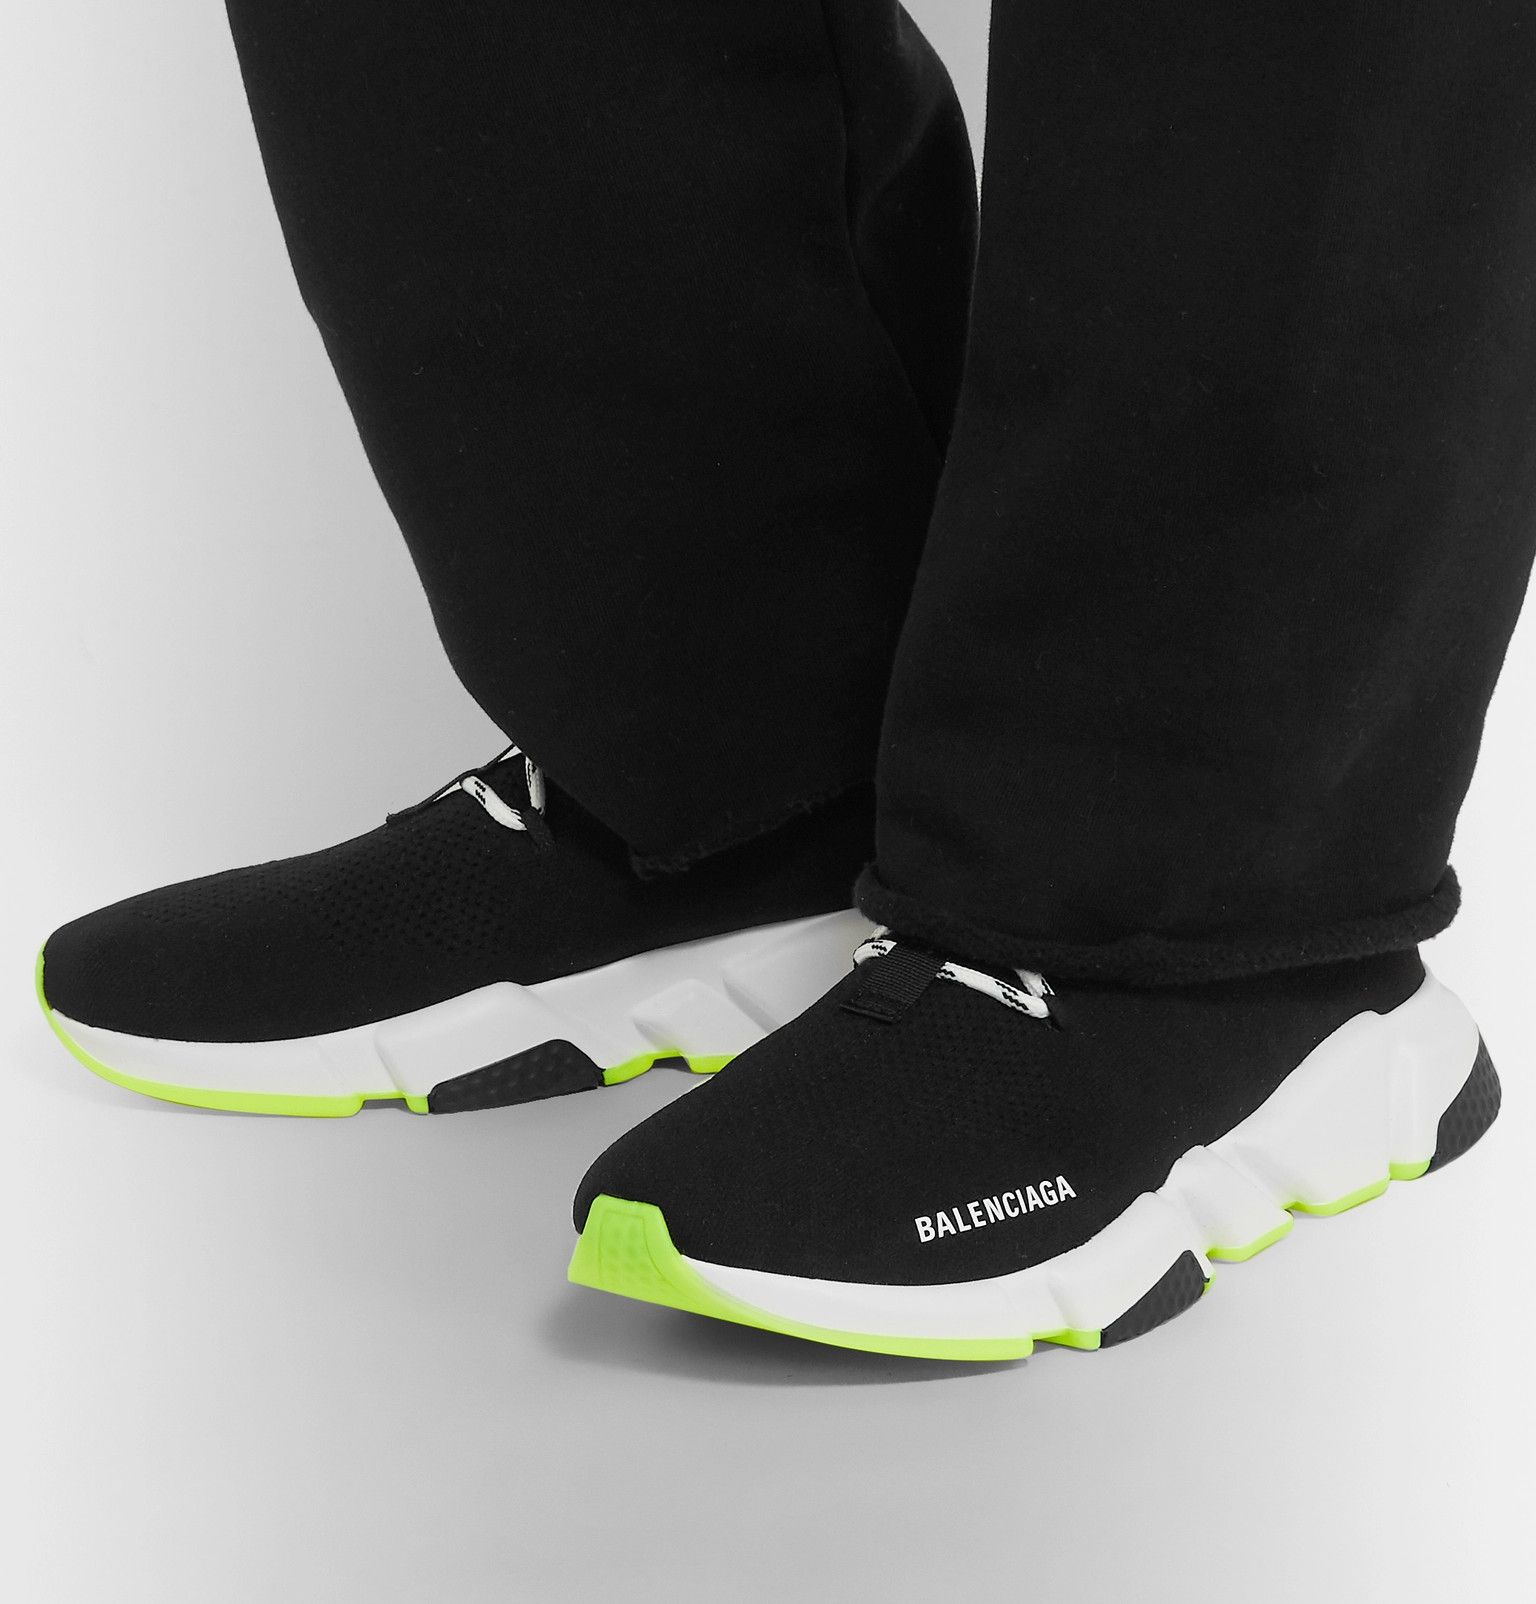 Balenciaga Speed Stretch Balenciaga Shoes Balenciaga Fashion